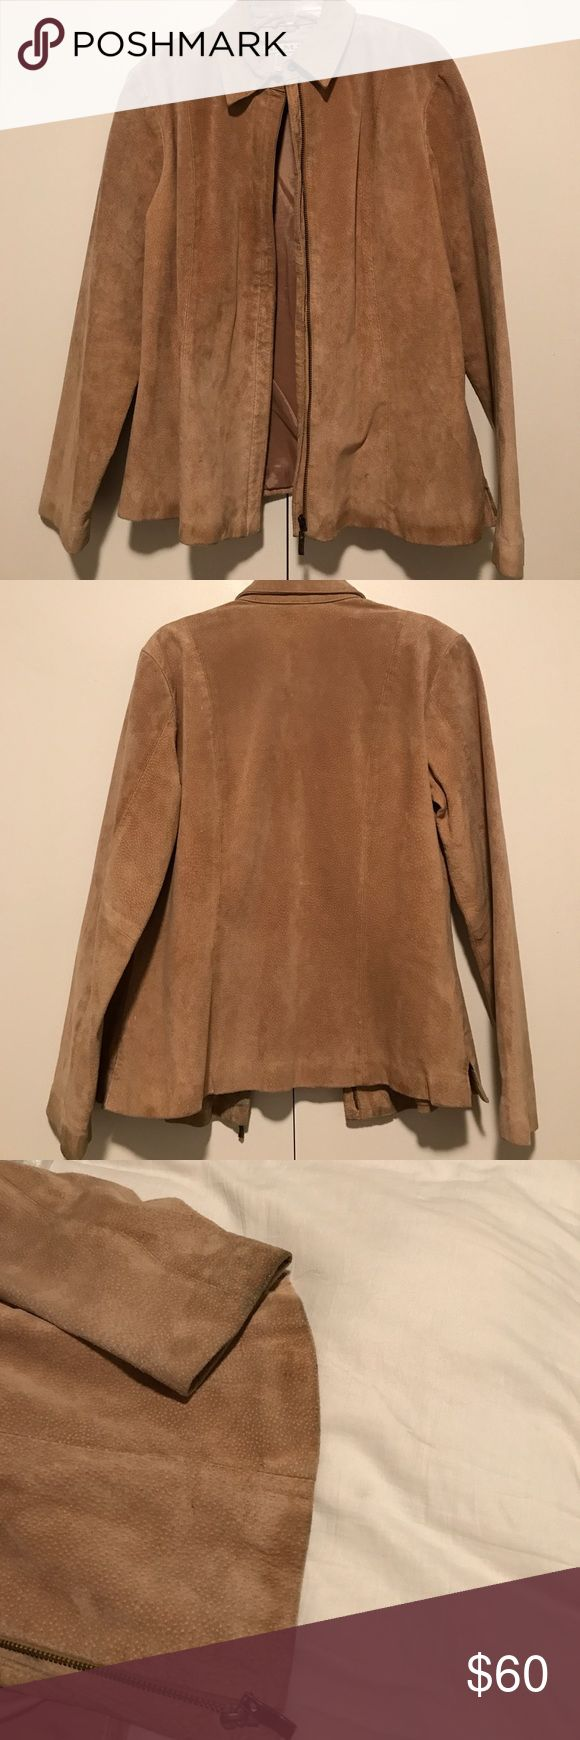 A.M.I. Suede leather jacket - sz M Suede leather jacket with zip front. Slightly cinched at waist but overall straight fit. Worn from age (as shown in picture of sleeve and hem, this jacket is several several decades old!) made by A.M.I., size medium. 22 inches long. A.M.I Jackets & Coats